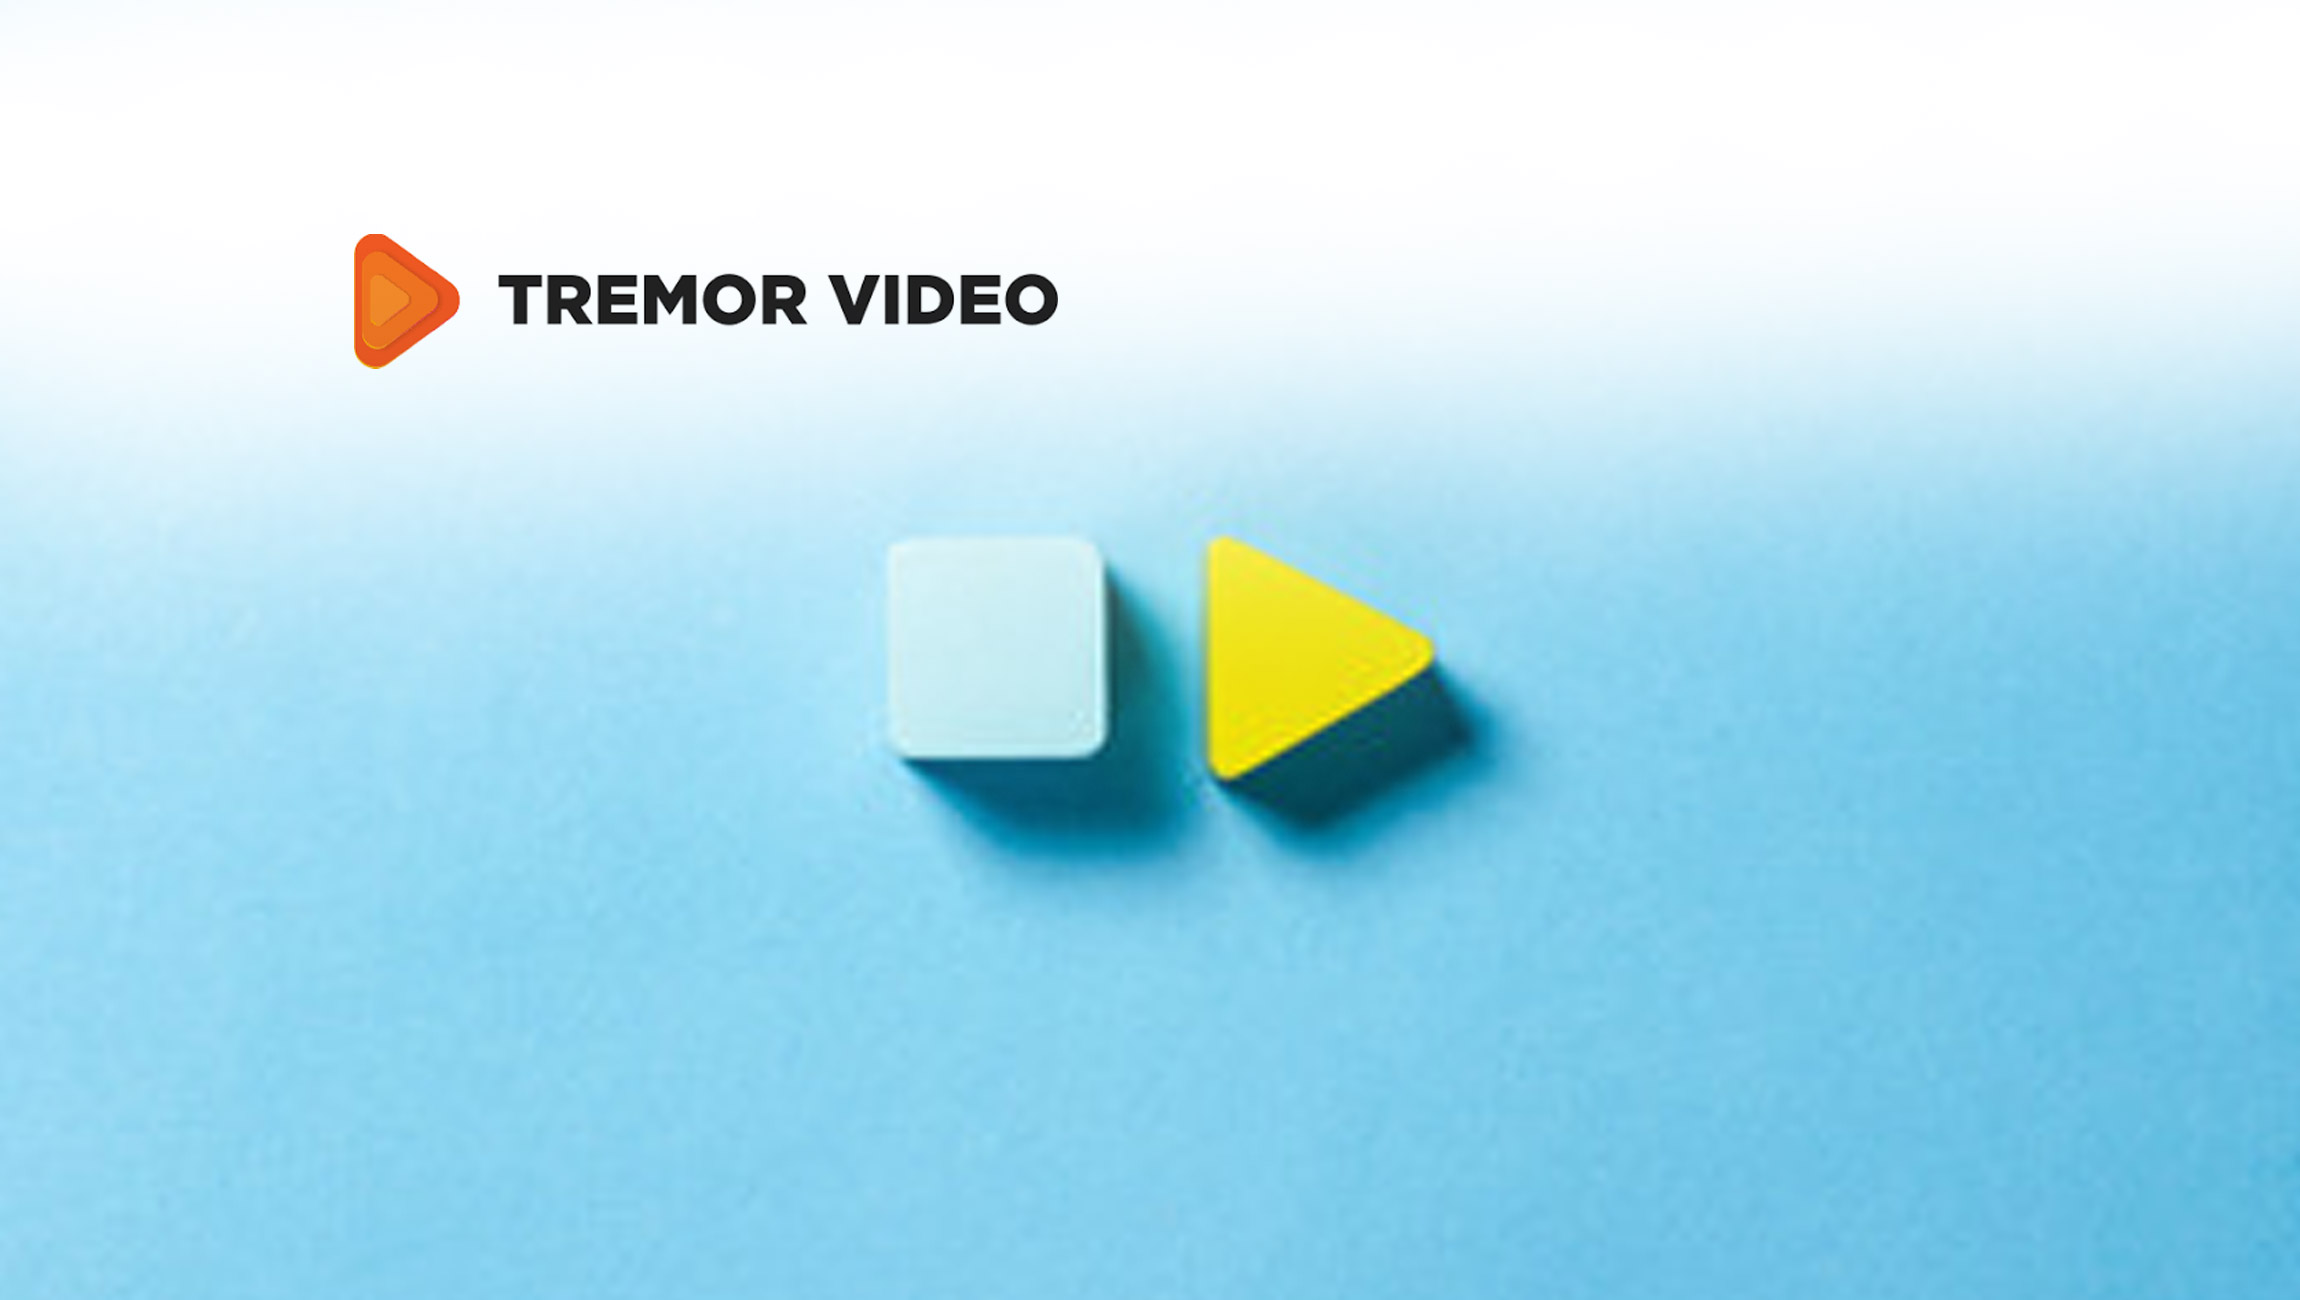 Tremor Video Set to Launch TV Intelligence Solution